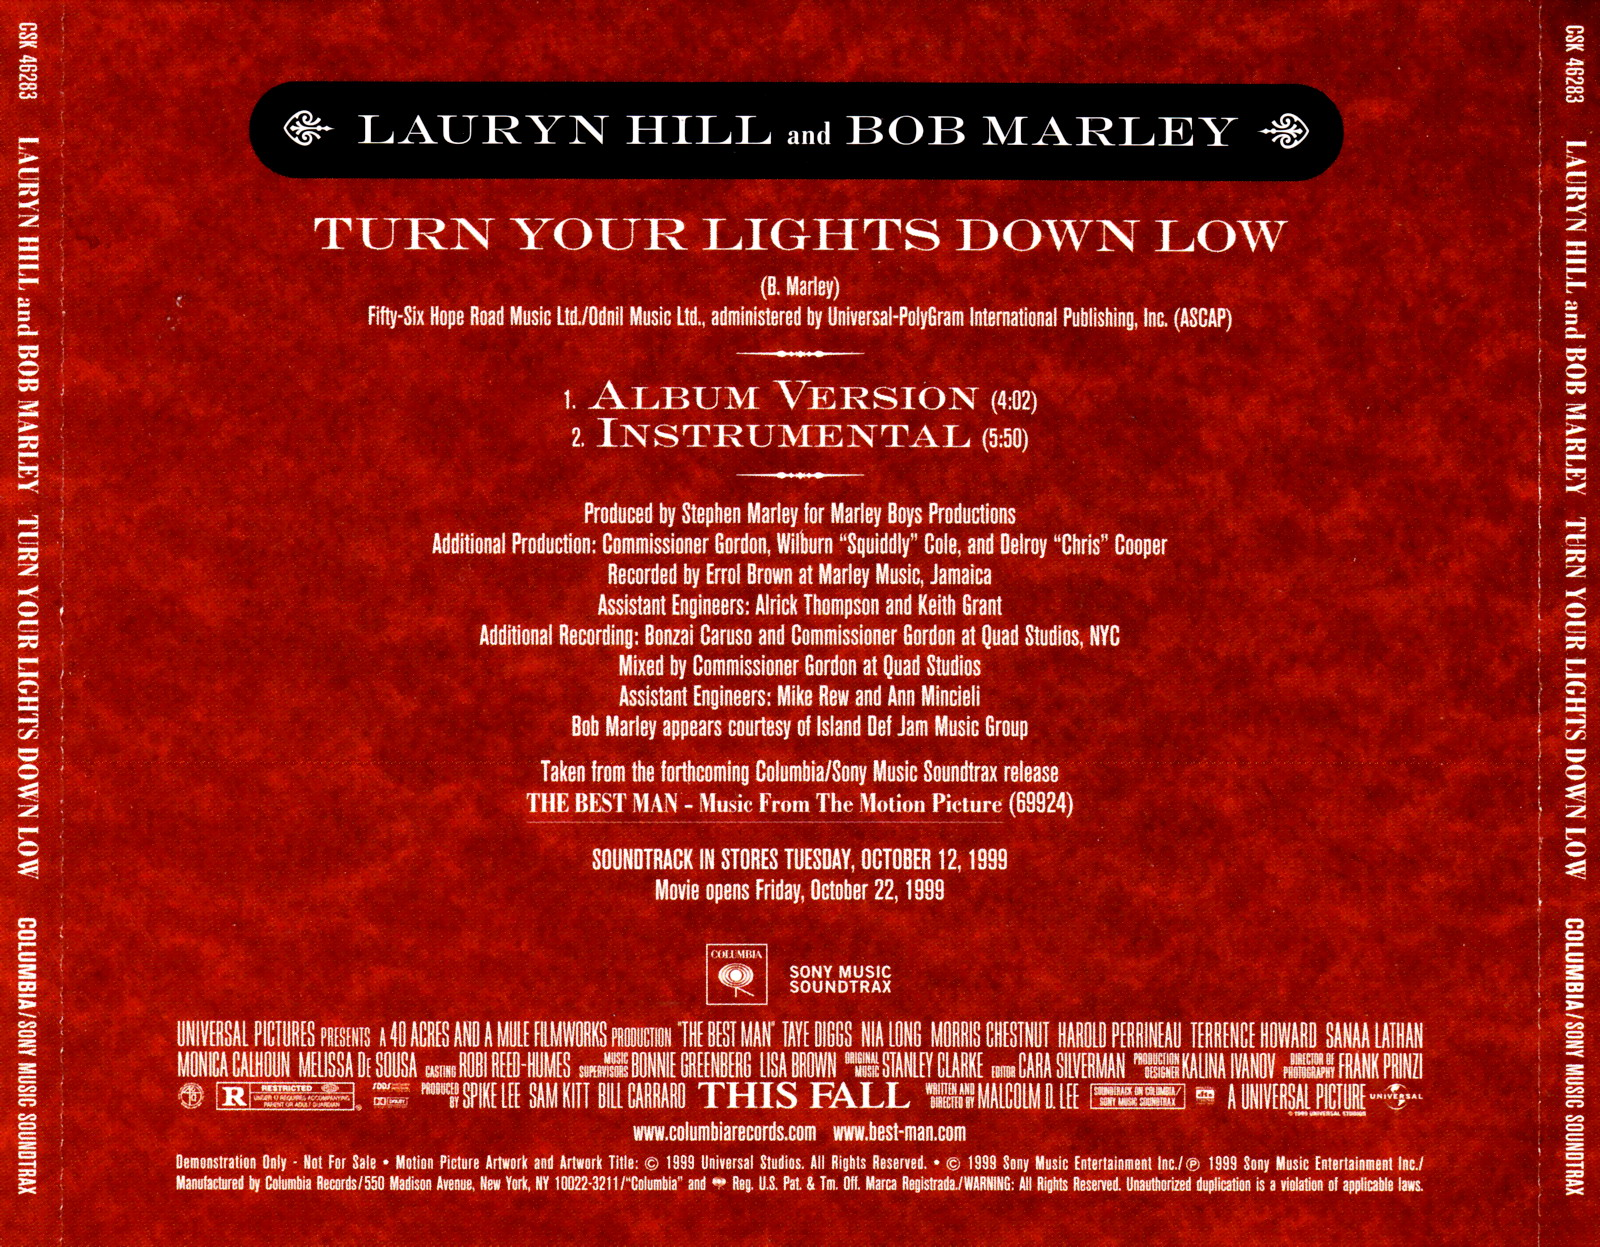 Turn Your Lights Down Low Lauryn Hill  sc 1 st  Democraciaejustica & Turn Your Lights Down Low Mp3 - Democraciaejustica